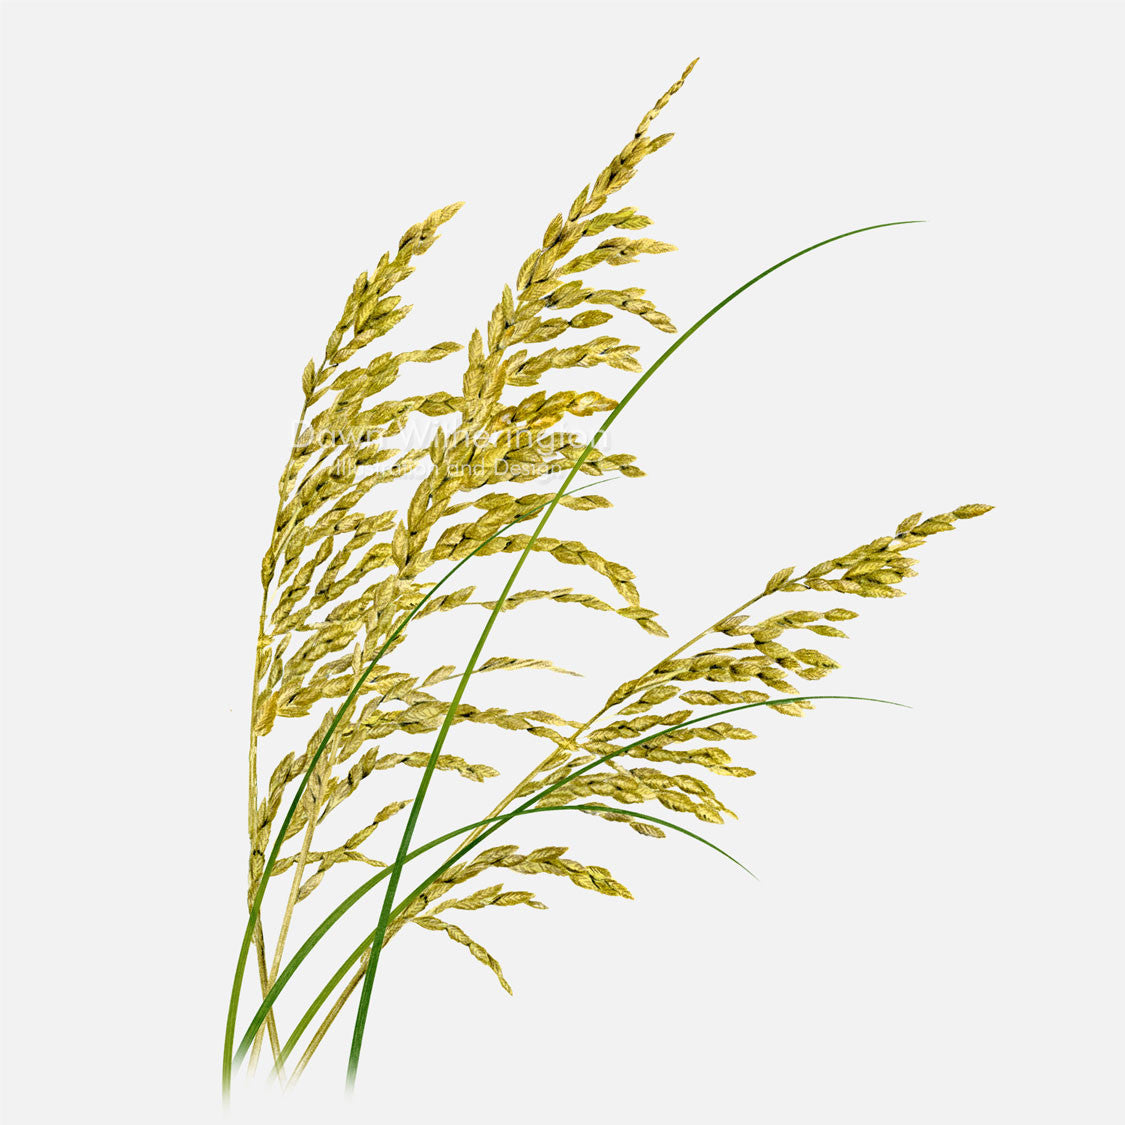 This beautiful illustration of seaoats, Uniola paniculata, is botanically accurate in detail.